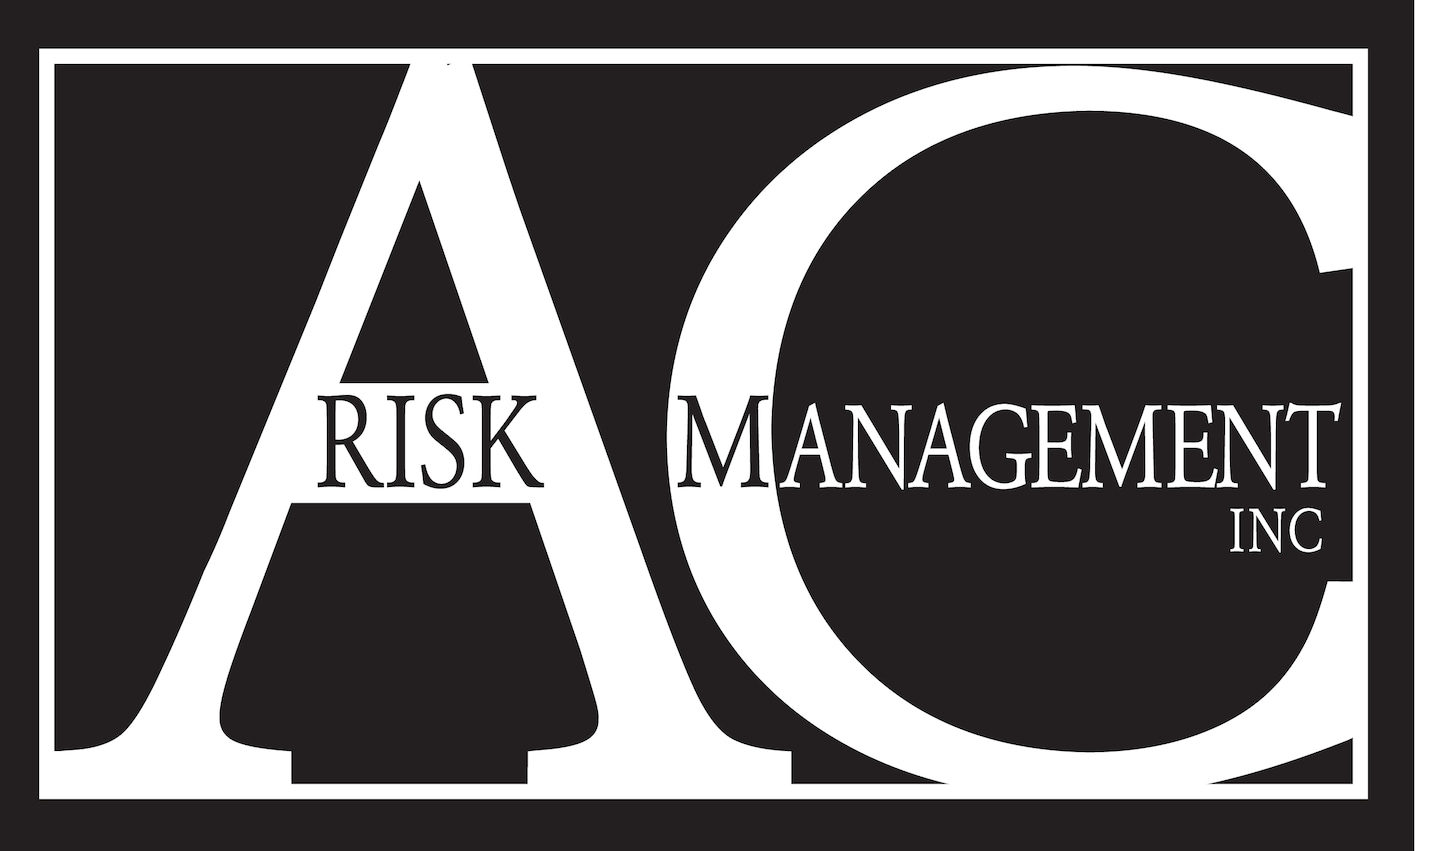 AC Risk Management Inc.